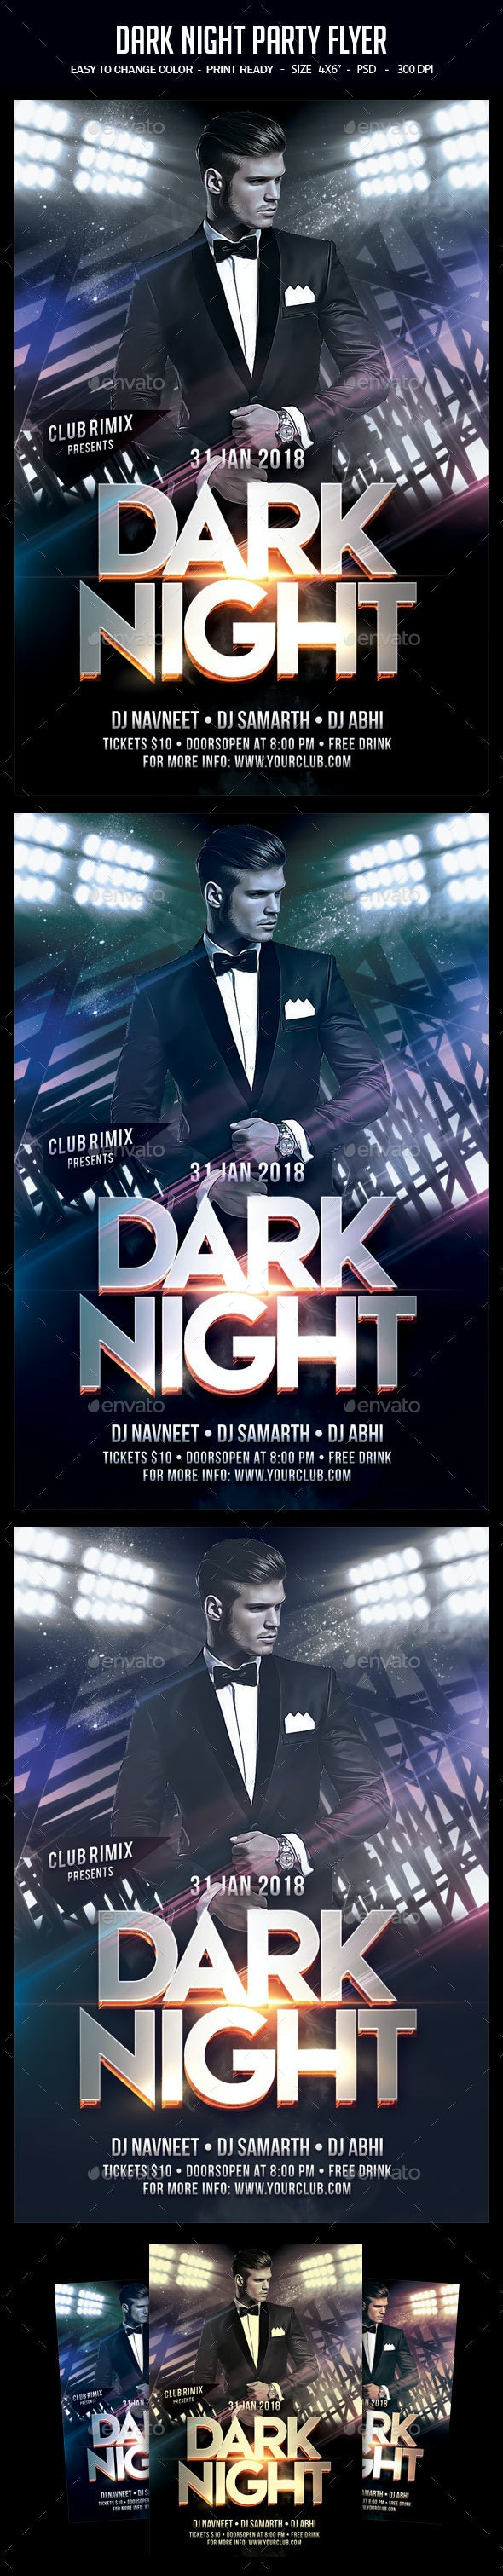 Dark Night Party Flyer - Clubs & Parties Events